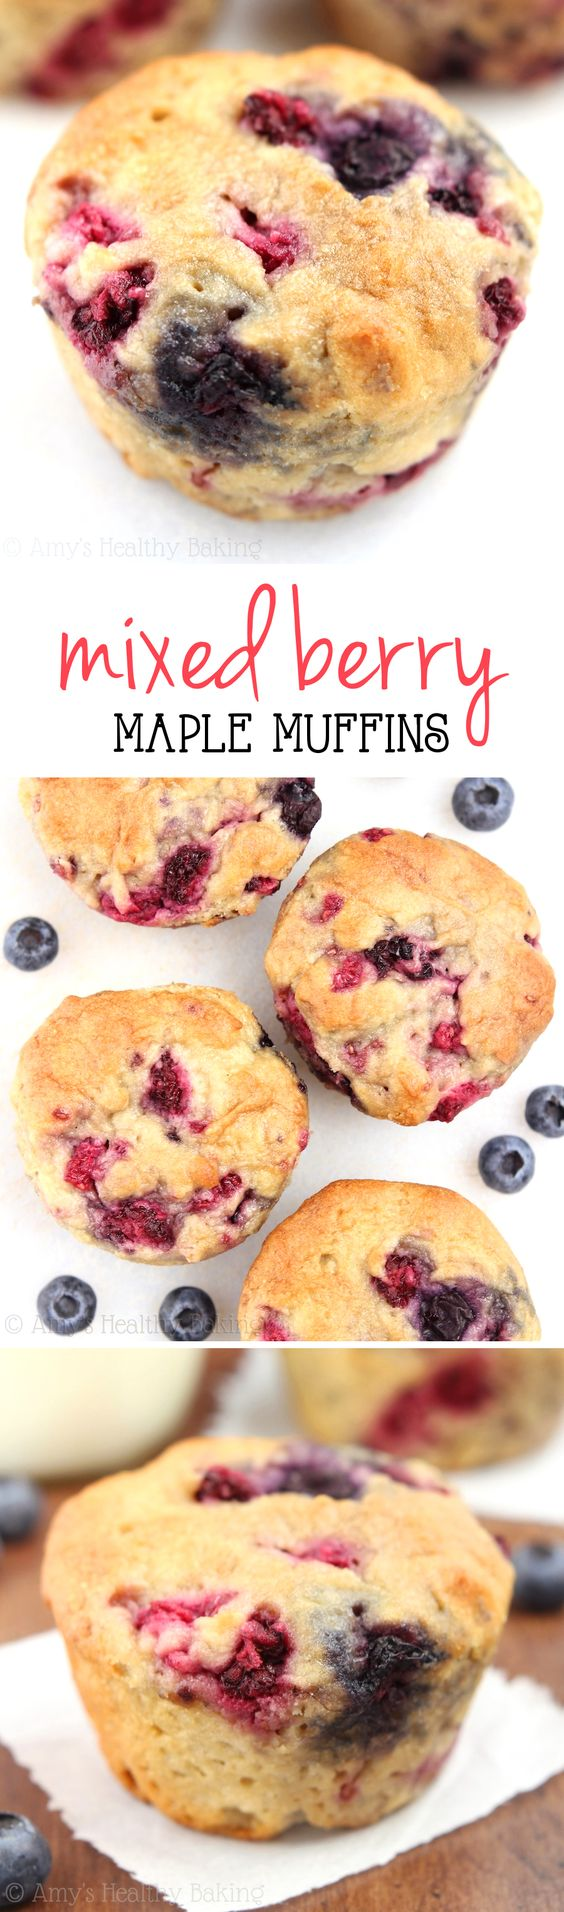 Maple Mixed Berry Muffins -- these healthy, clean-eating muffins practically taste like cupcakes! Under 150 calories too! (Sub half AP half WW for WW pastry flour)